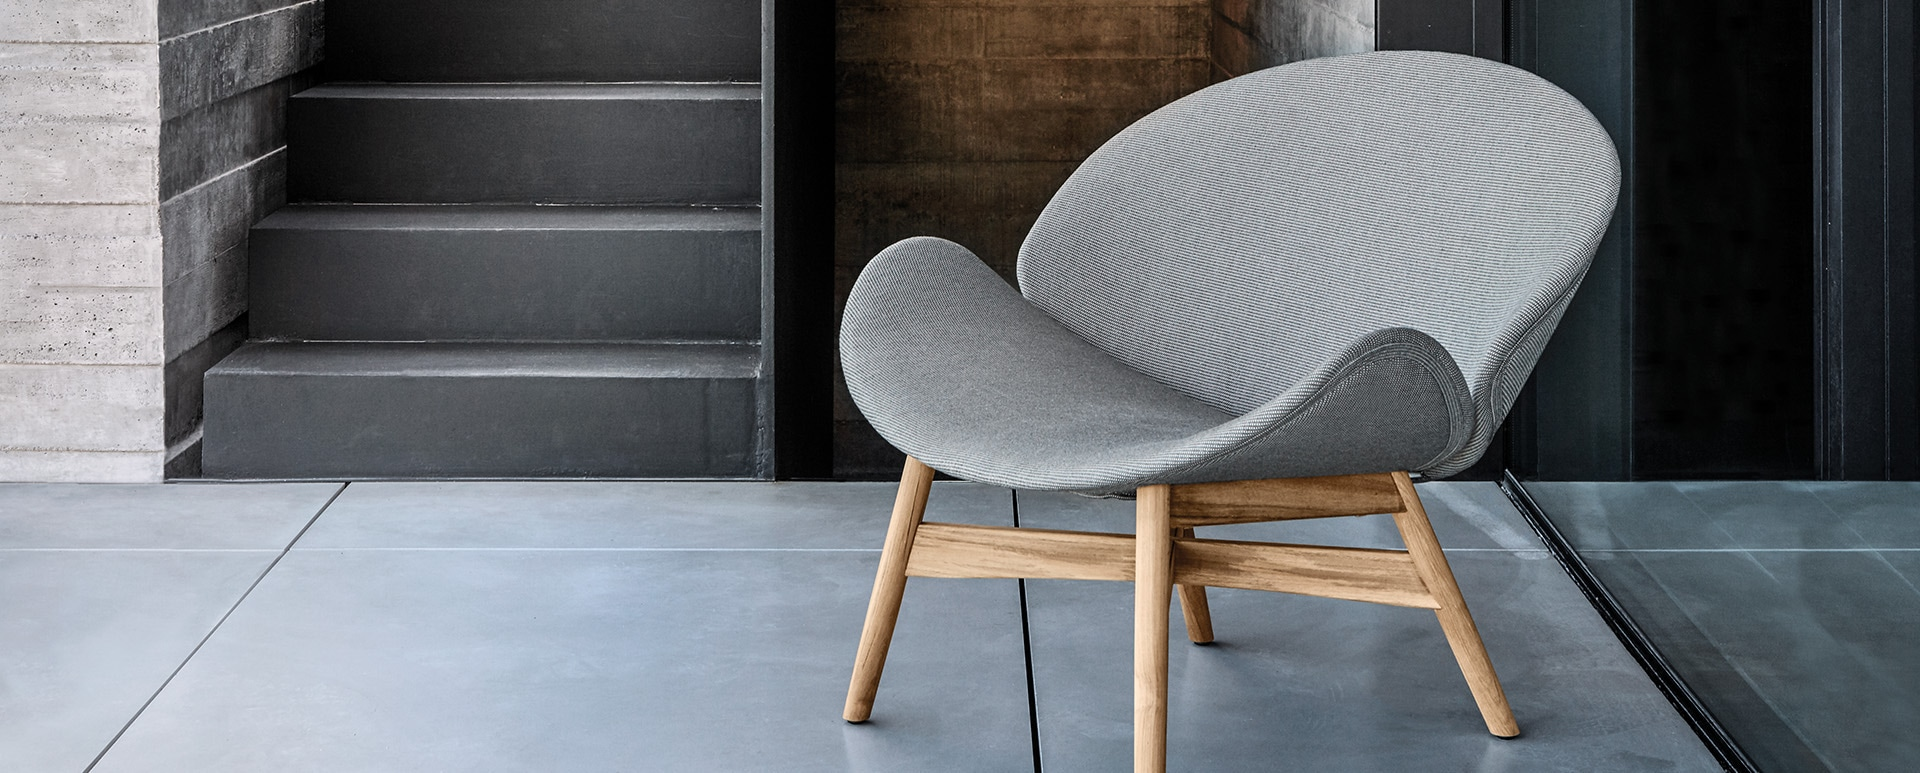 DANSK easy outdoor chair by Gloster